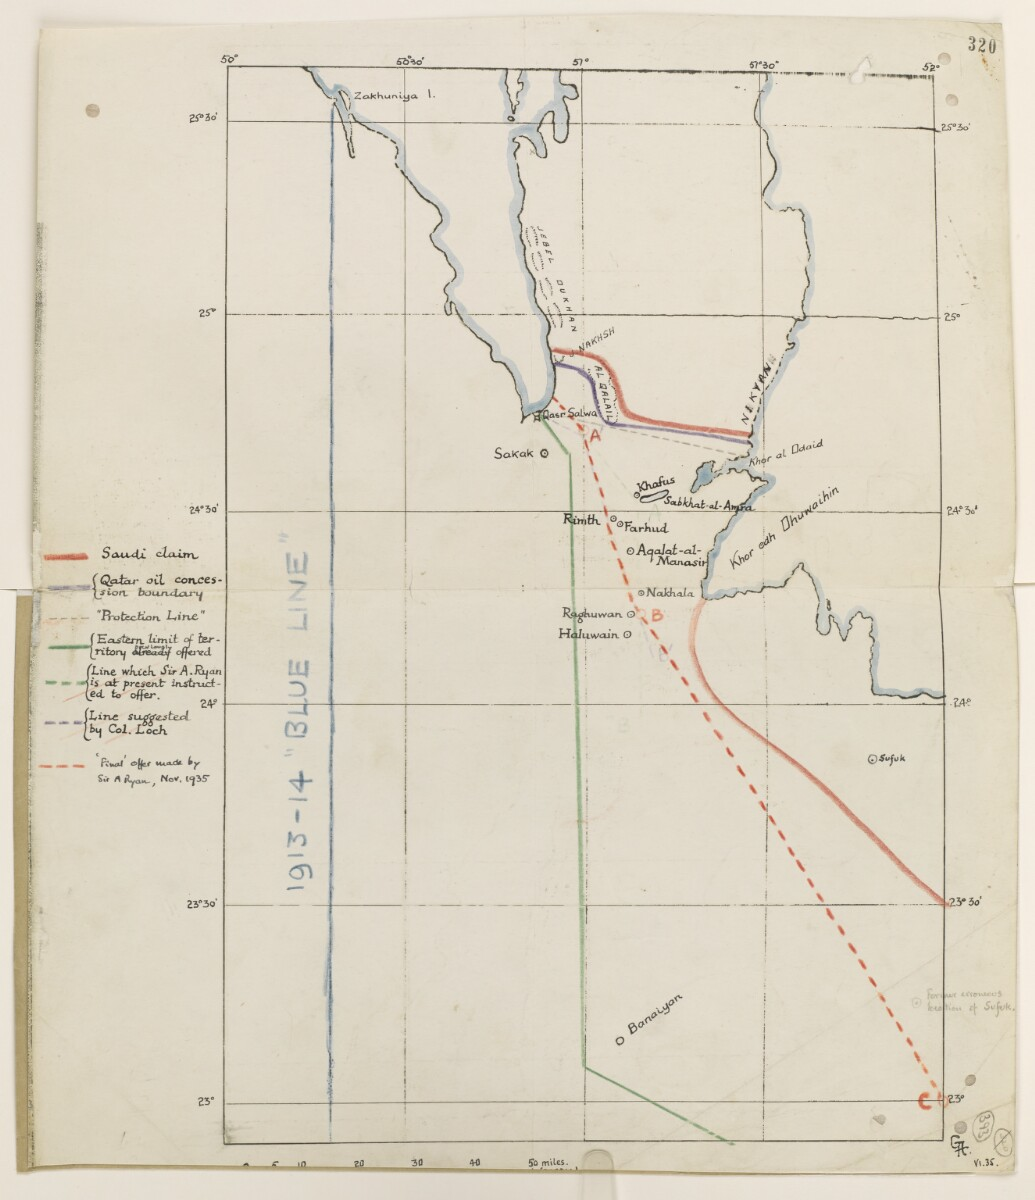 Sketch Map of the Eastern Part of the Arabian Peninsula [393r] (1/2)